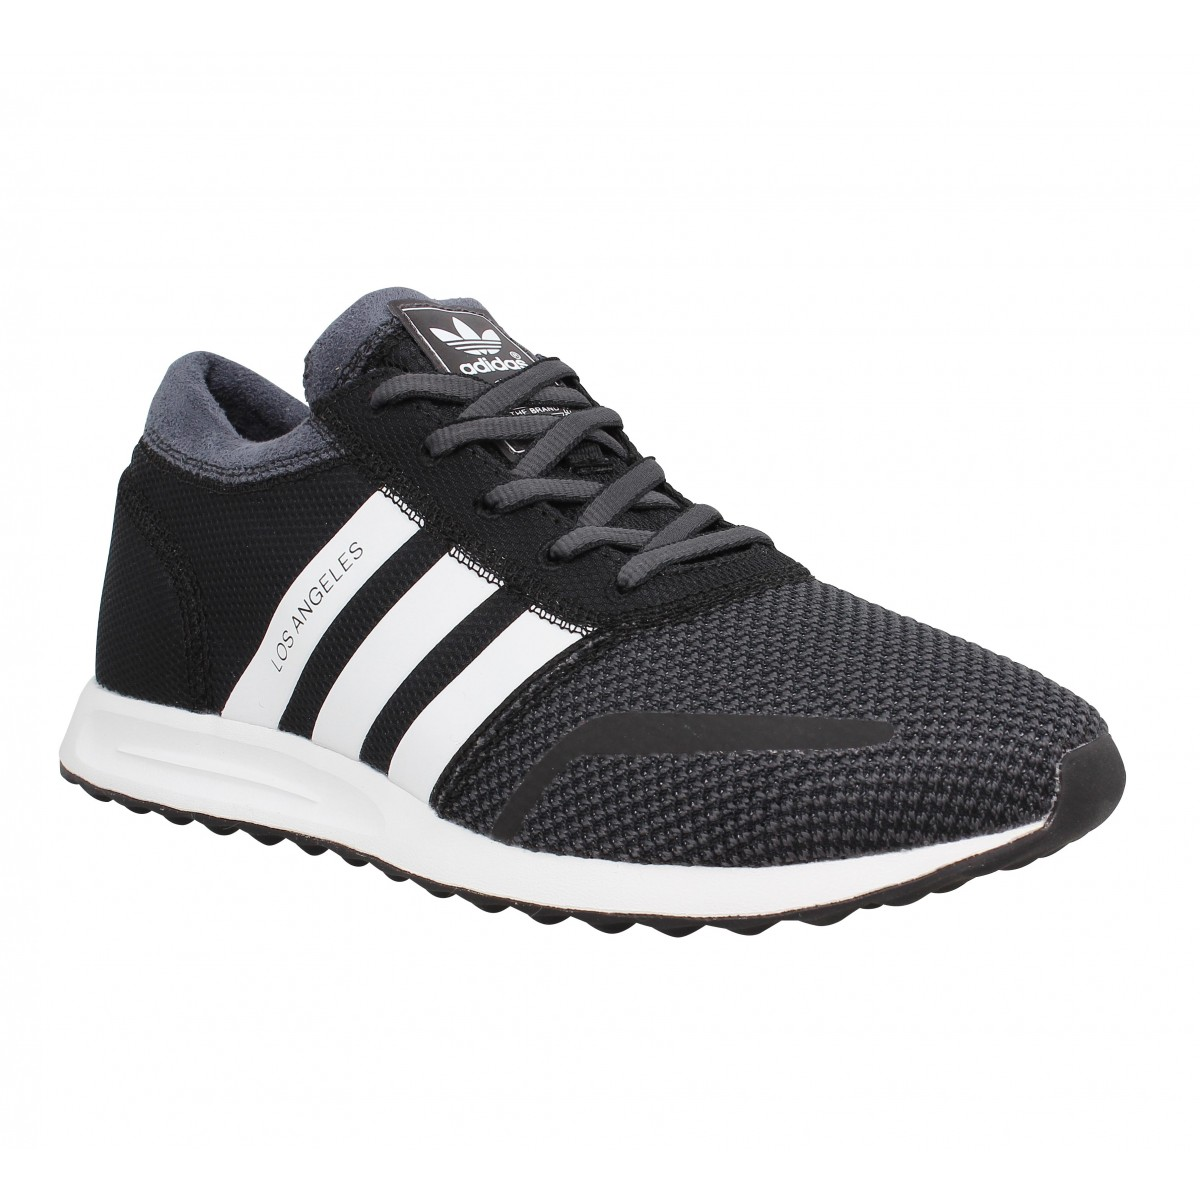 Baskets ADIDAS Los Angeles toile Homme Black